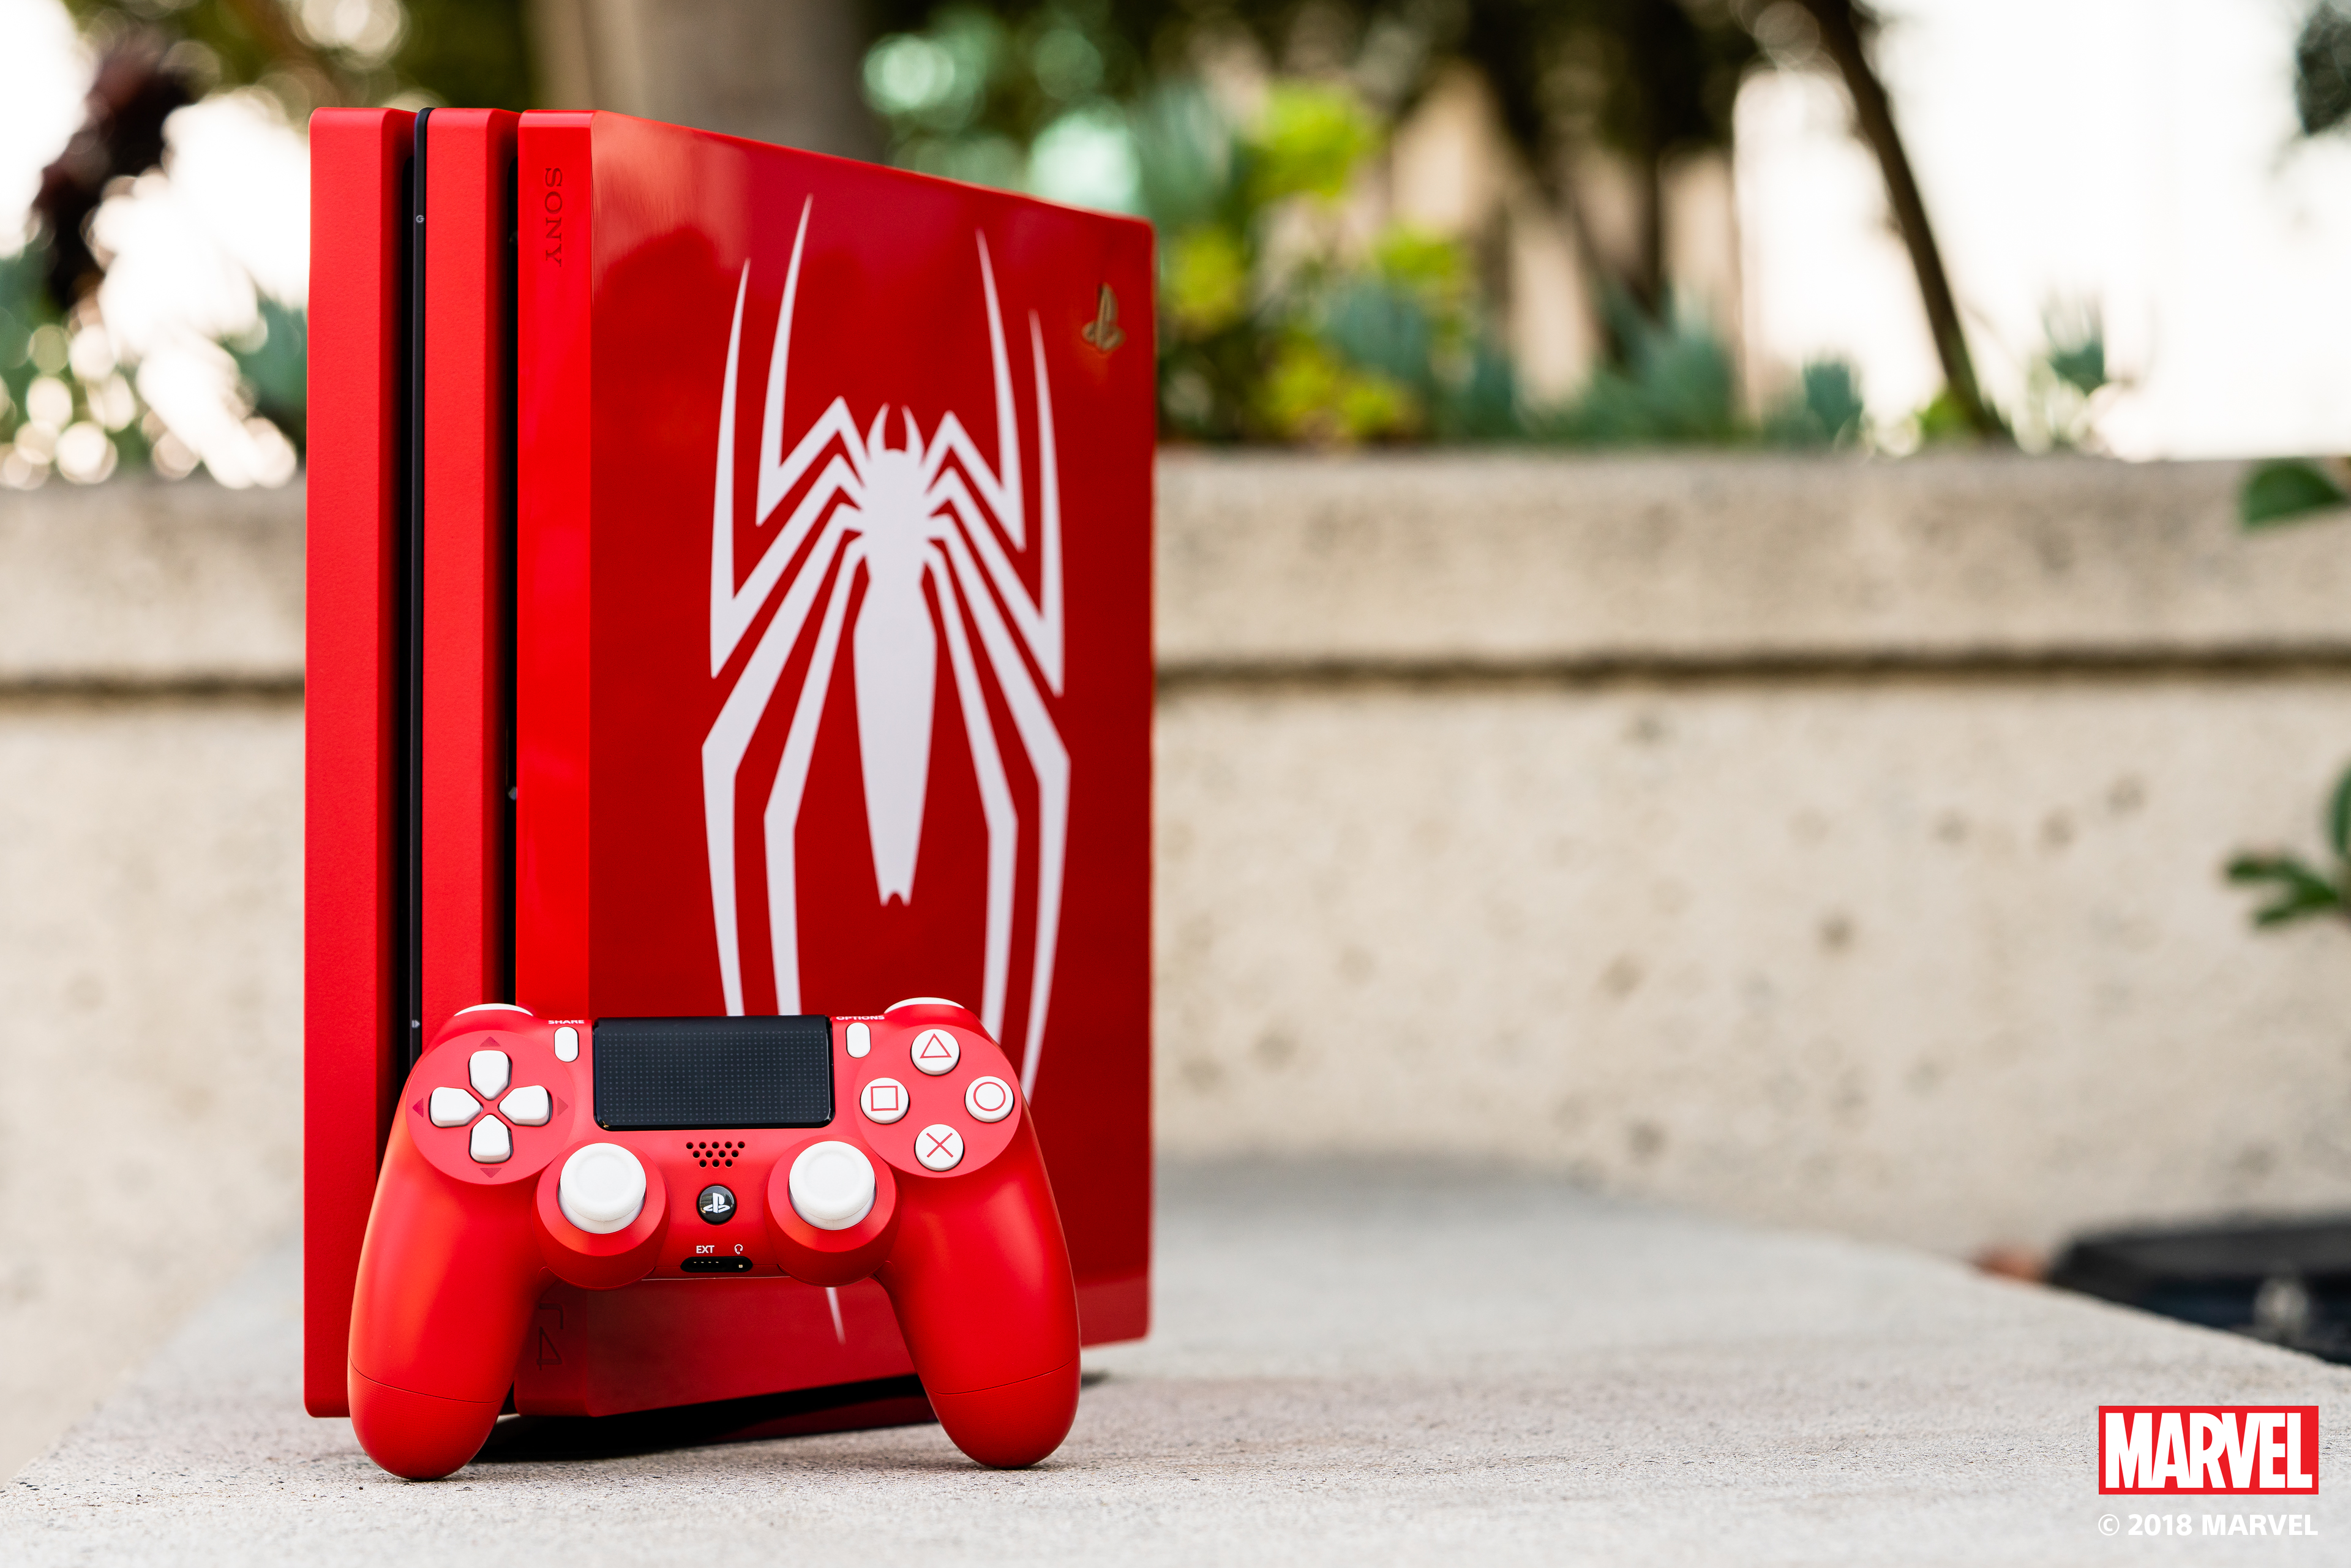 Marvel's Spider-Man PS4 Pro